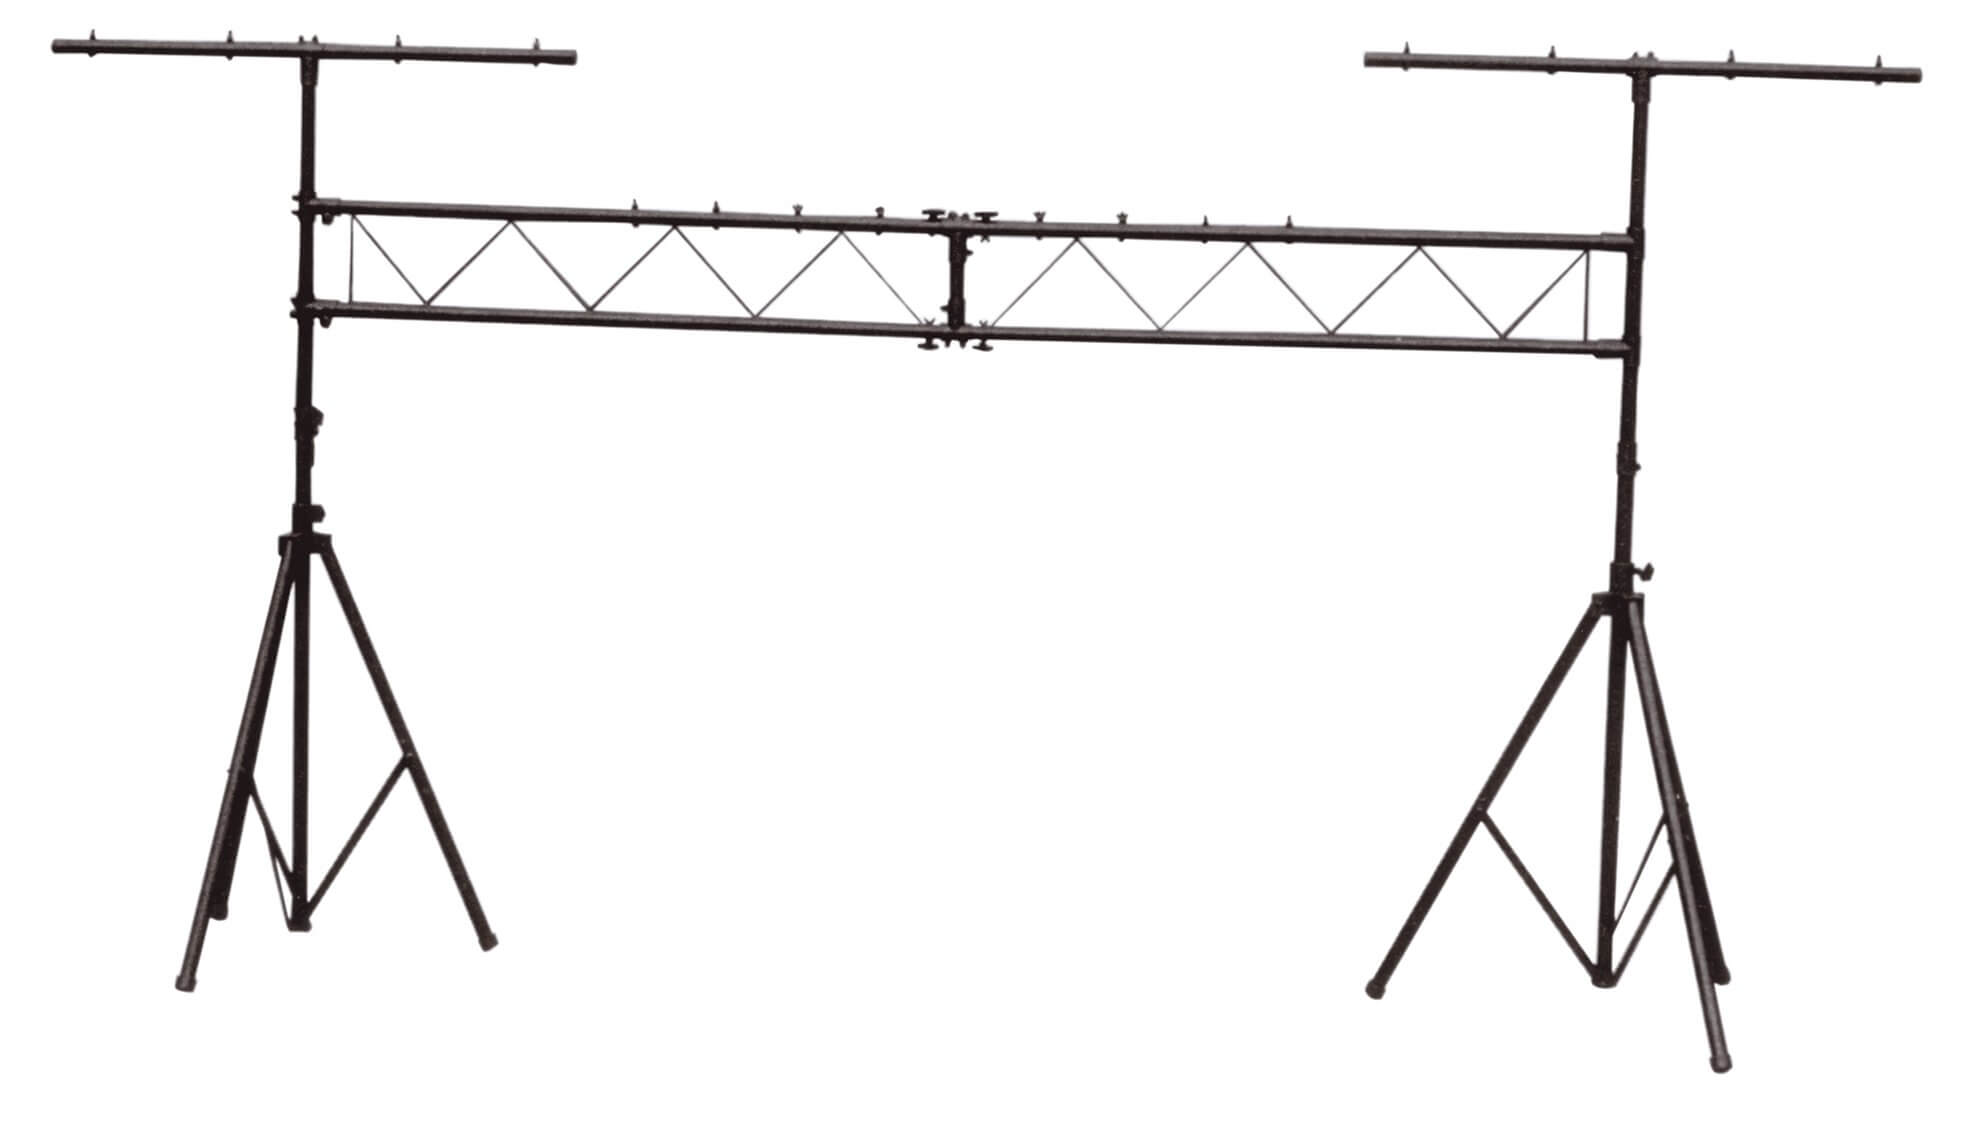 Soundlab Heavy Duty Trussing Bridge Goalpost Lighting Stand